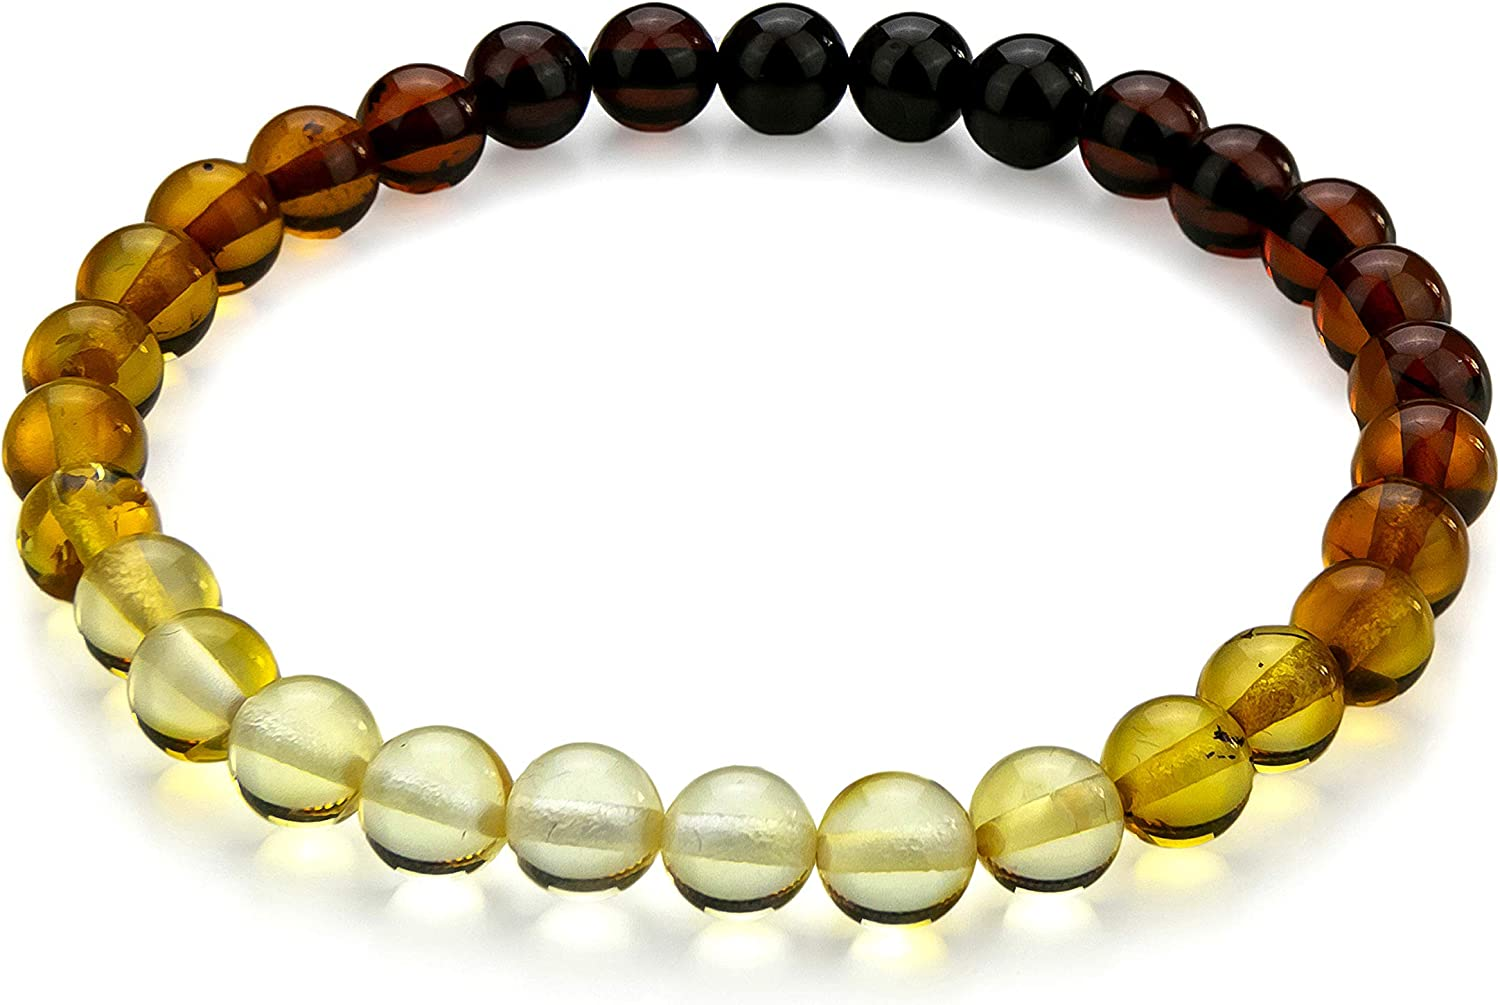 Amber Stretch Rainbow Bracelet - Natural Charm Bangle Baltic Resin Multi Color 6+ mm Beads - in a Gift Box - Amber Culture